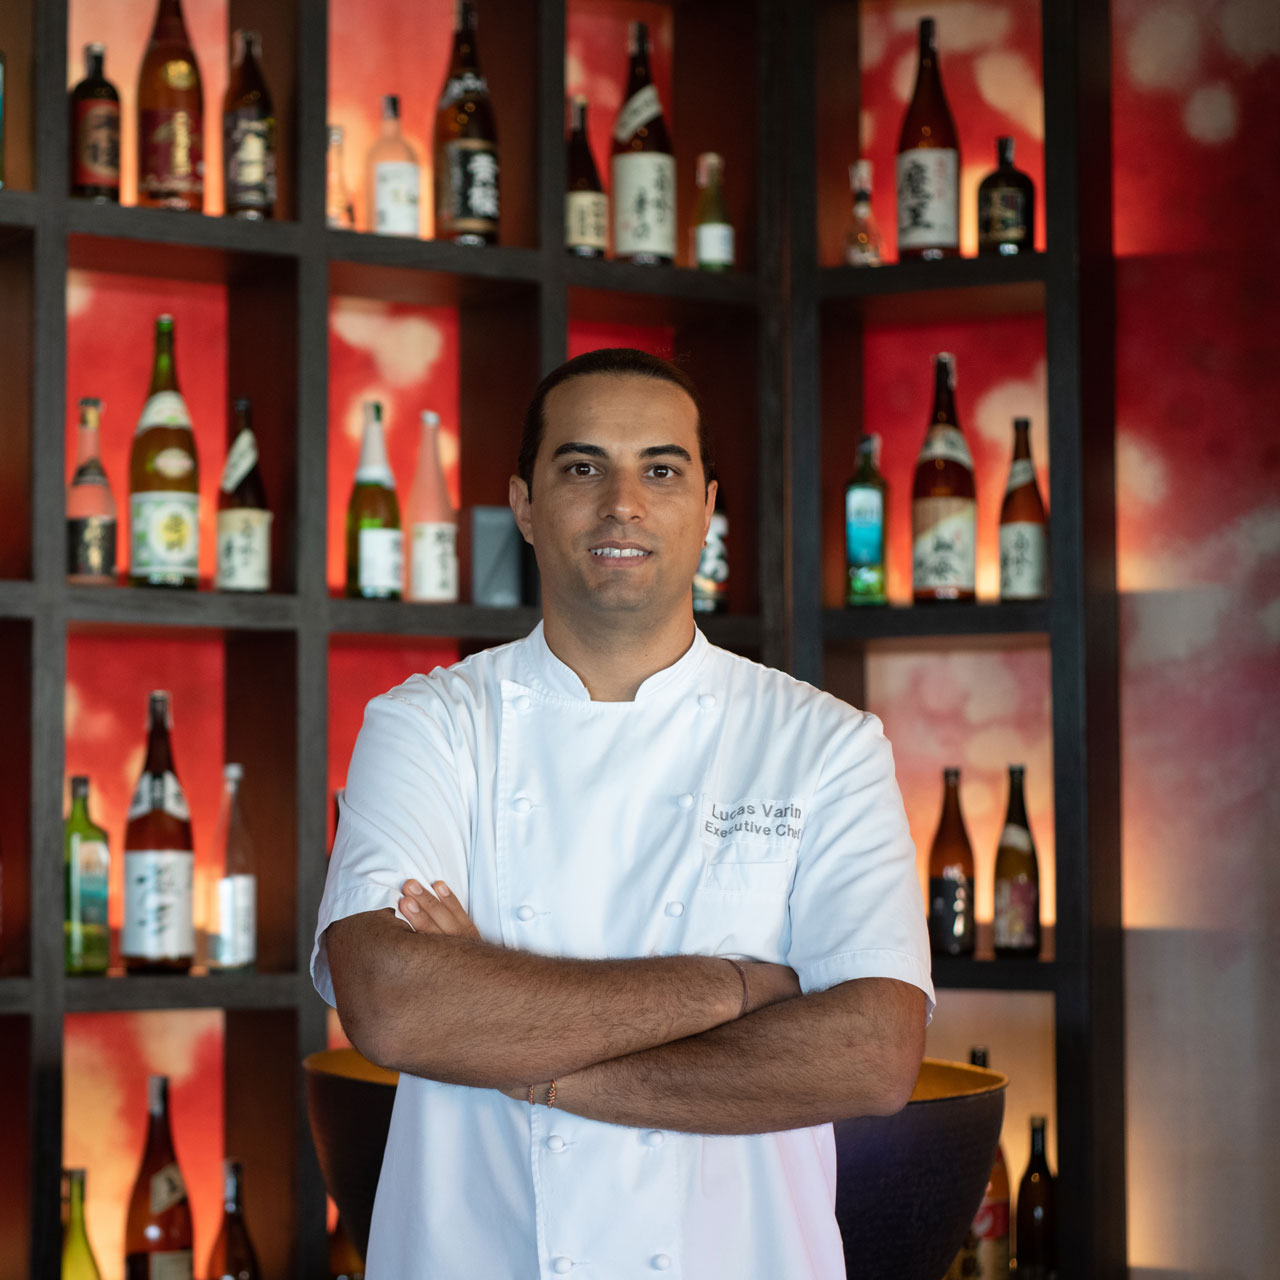 EXECUTIVE CHEF LUCAS VARIN